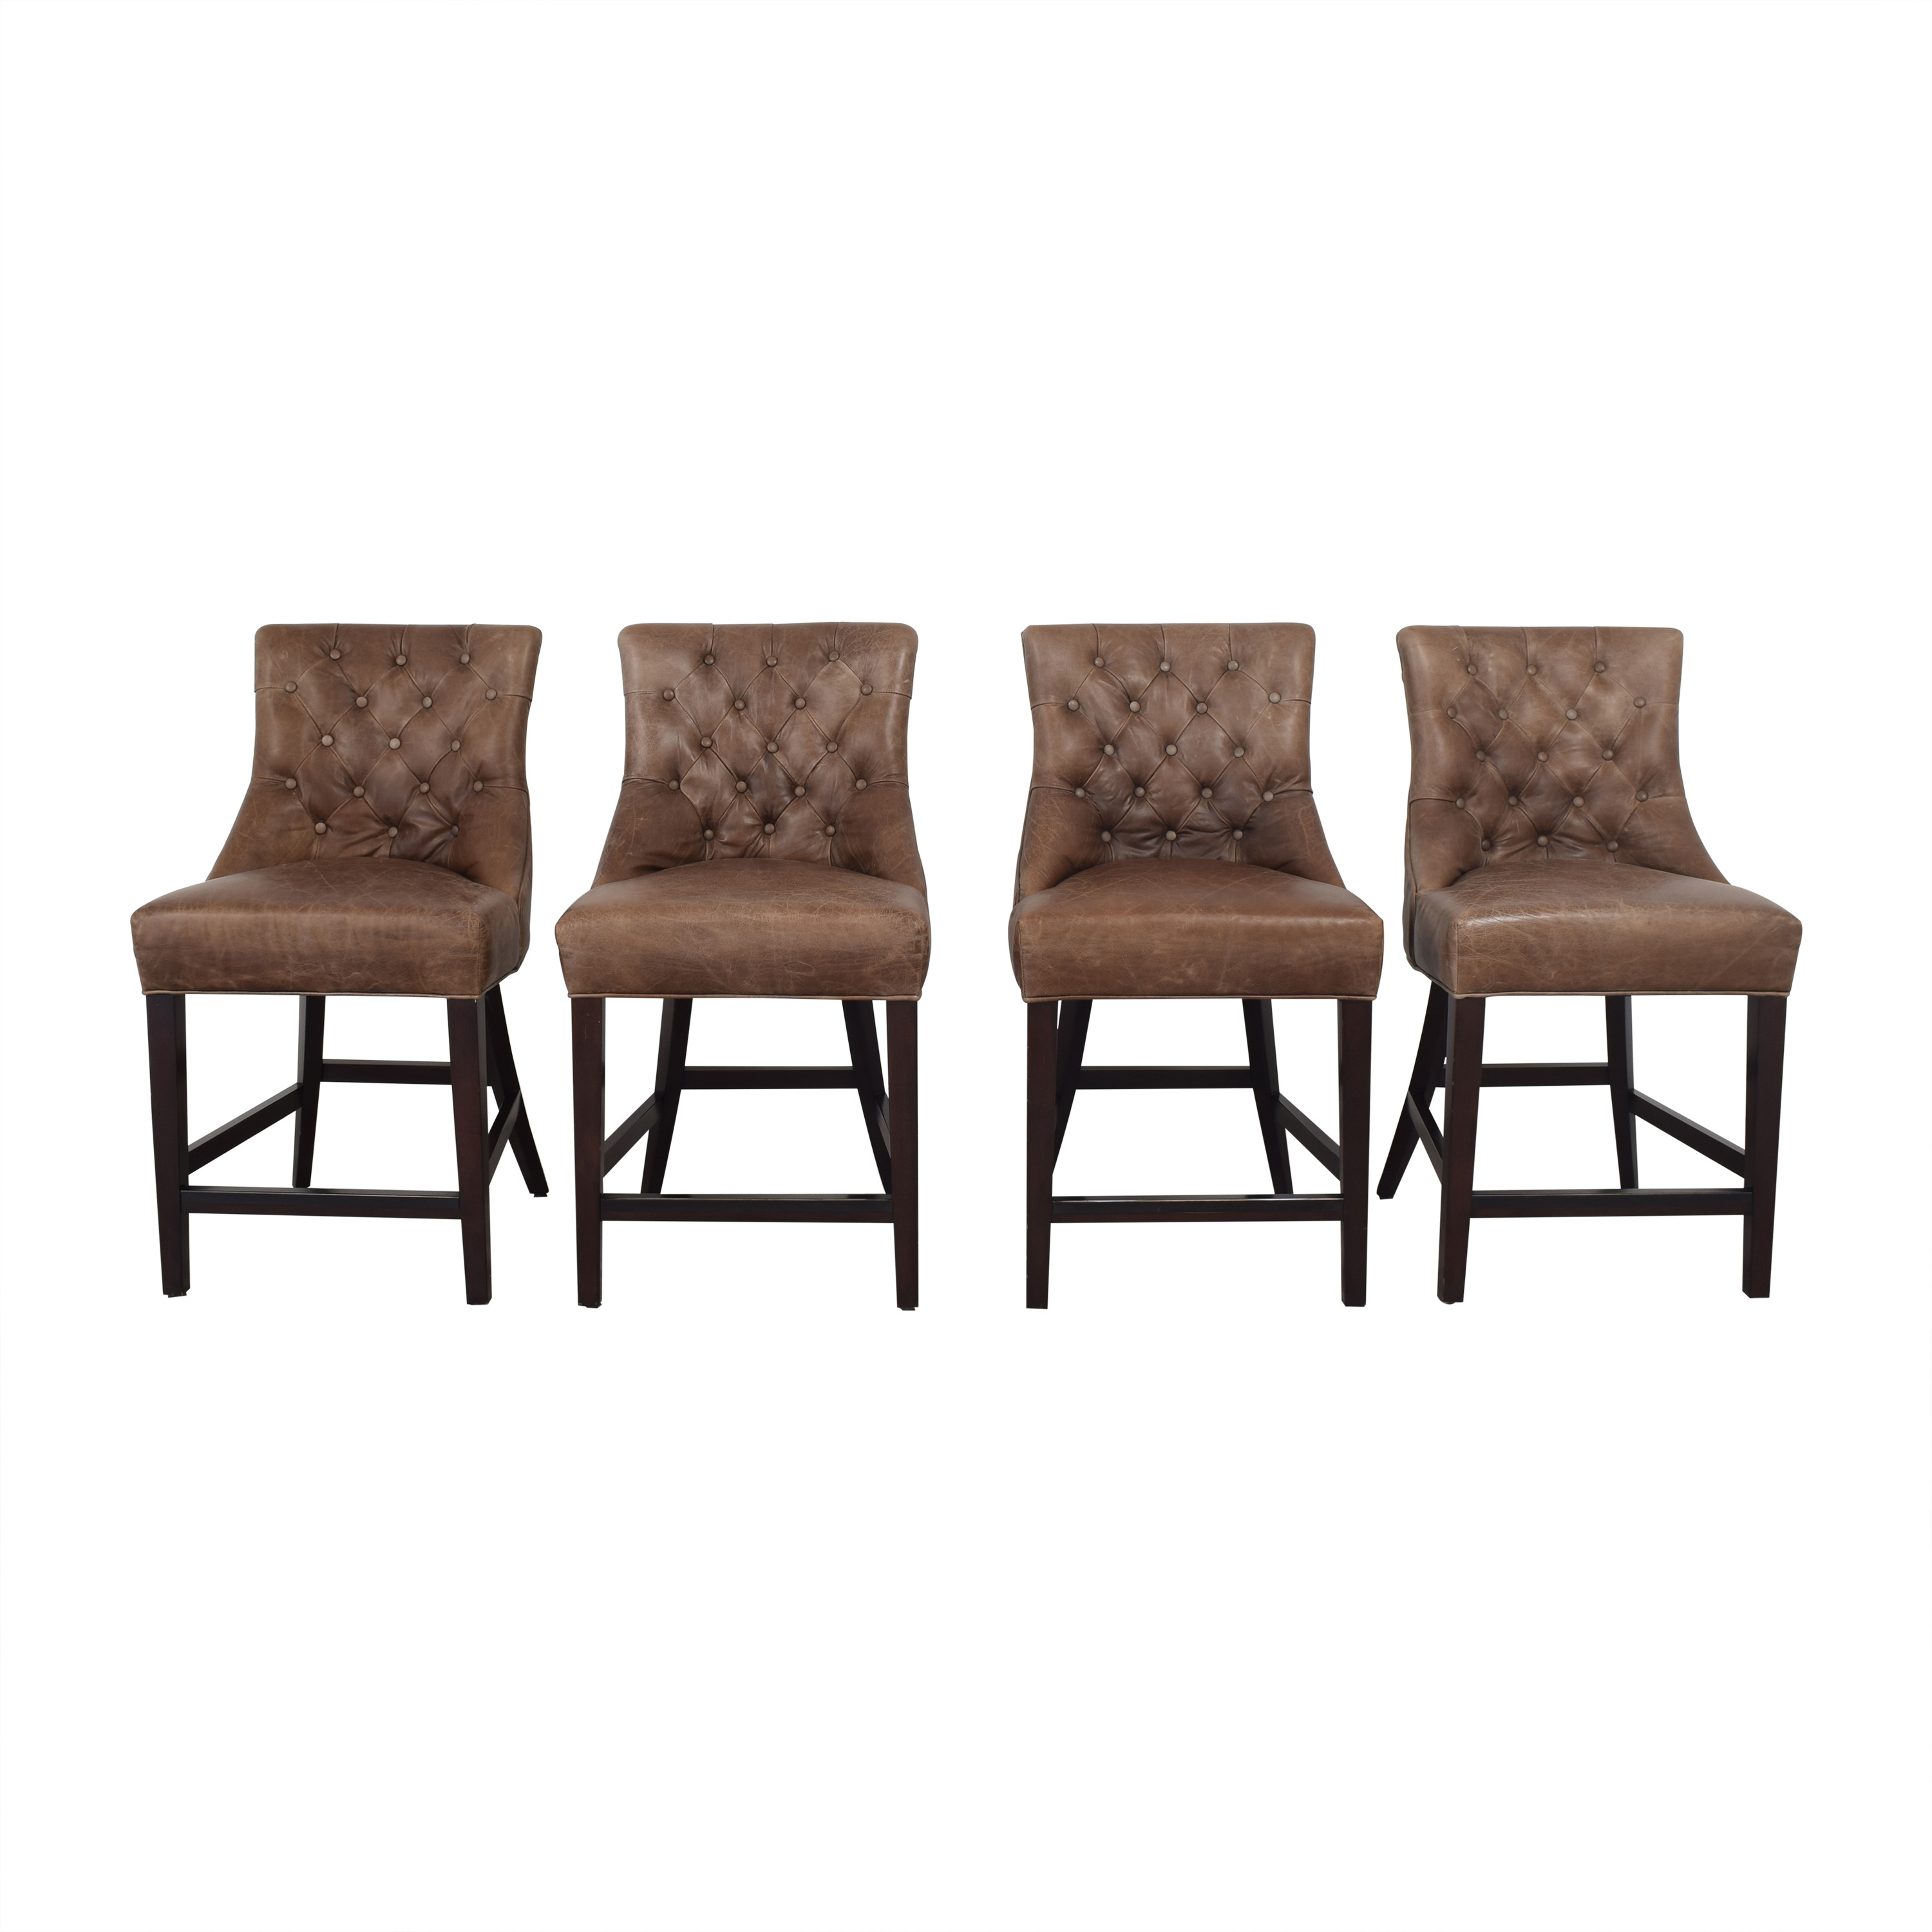 Pottery Barn Hayes Counter Stools / Chairs